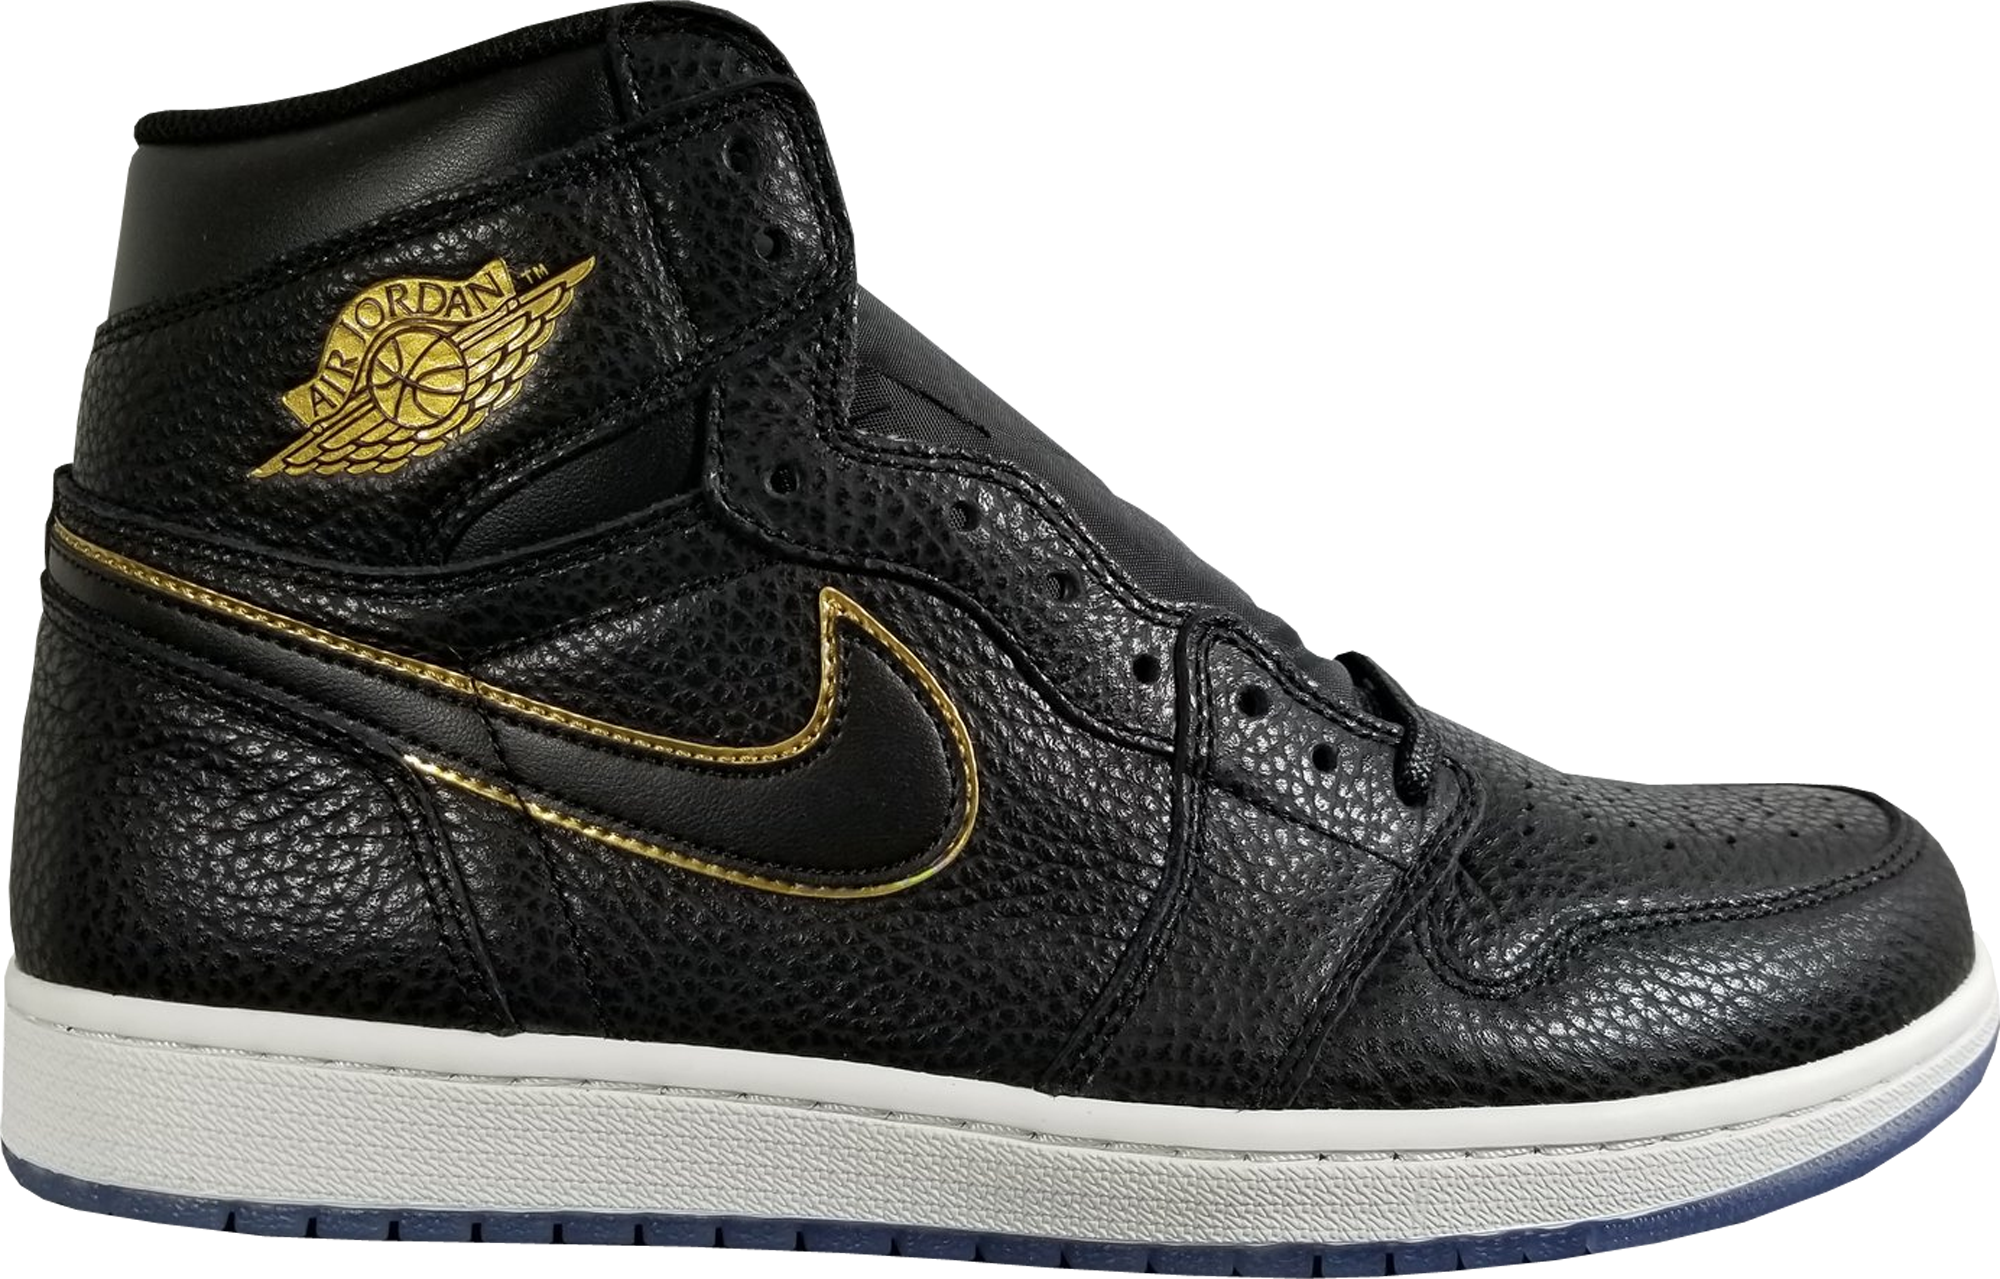 new products 55c78 732ef Air Jordan 1 LA Black Gold - StockX News